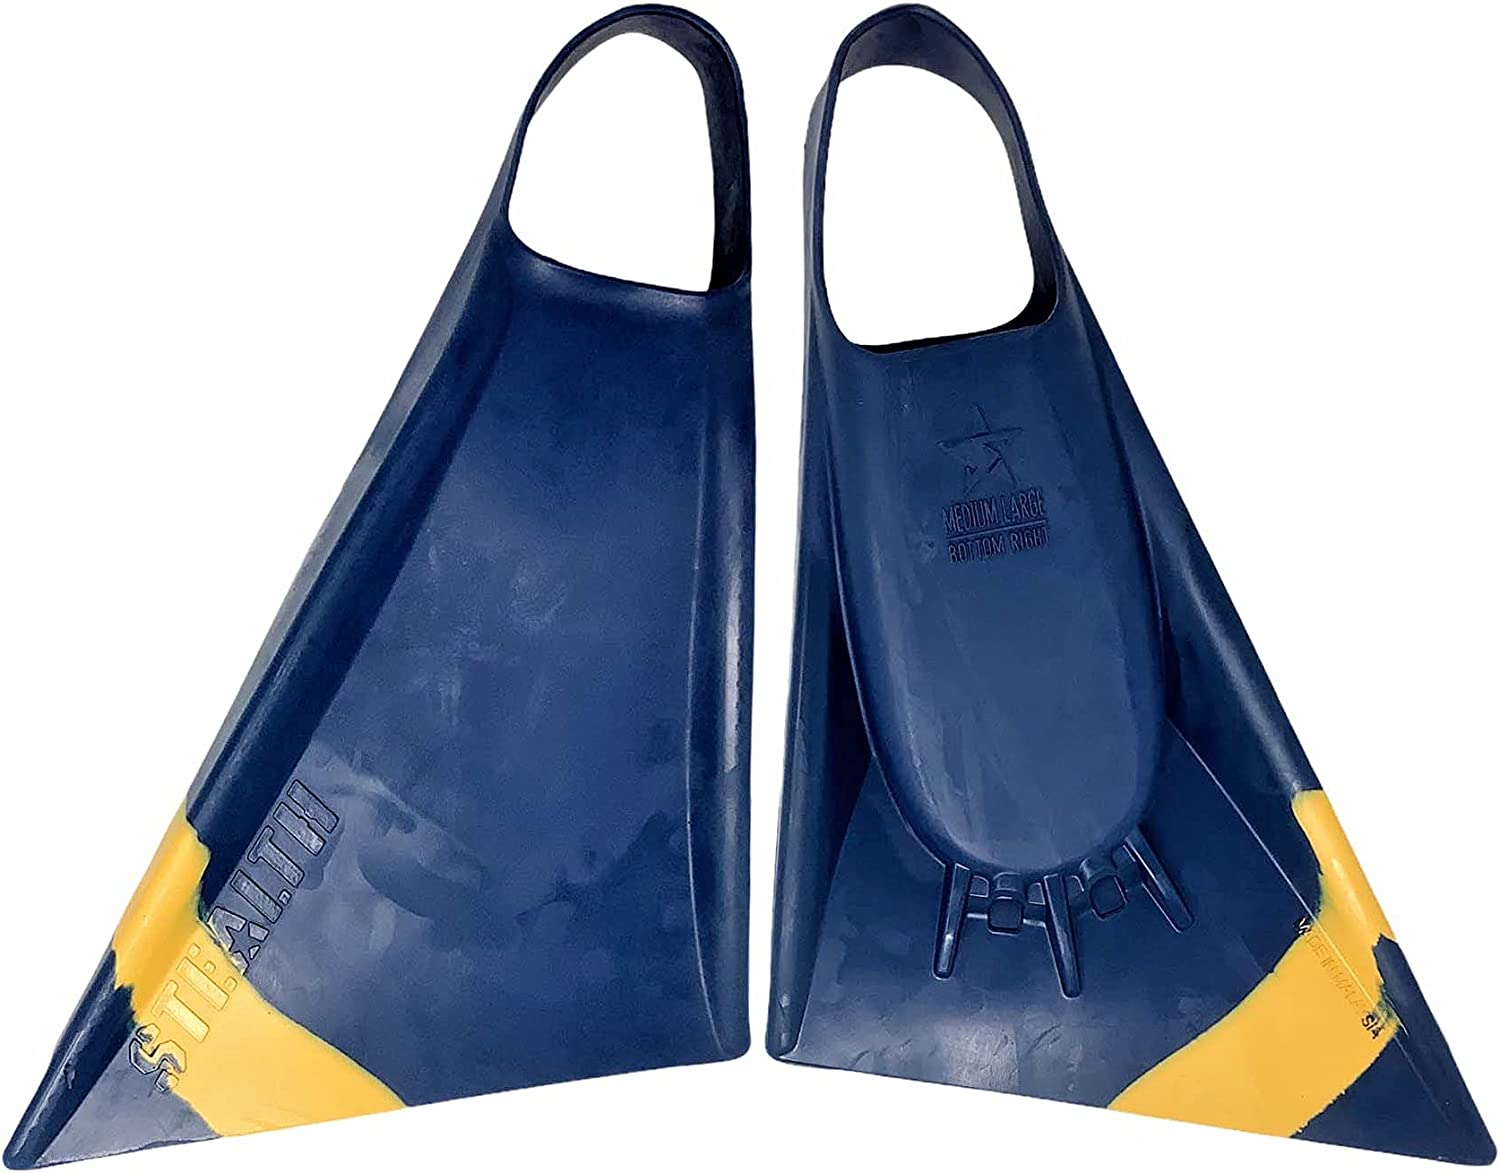 Stealth supreme S2 Max 60% OFF Pinnacle Floating Training Swim Fins Diving